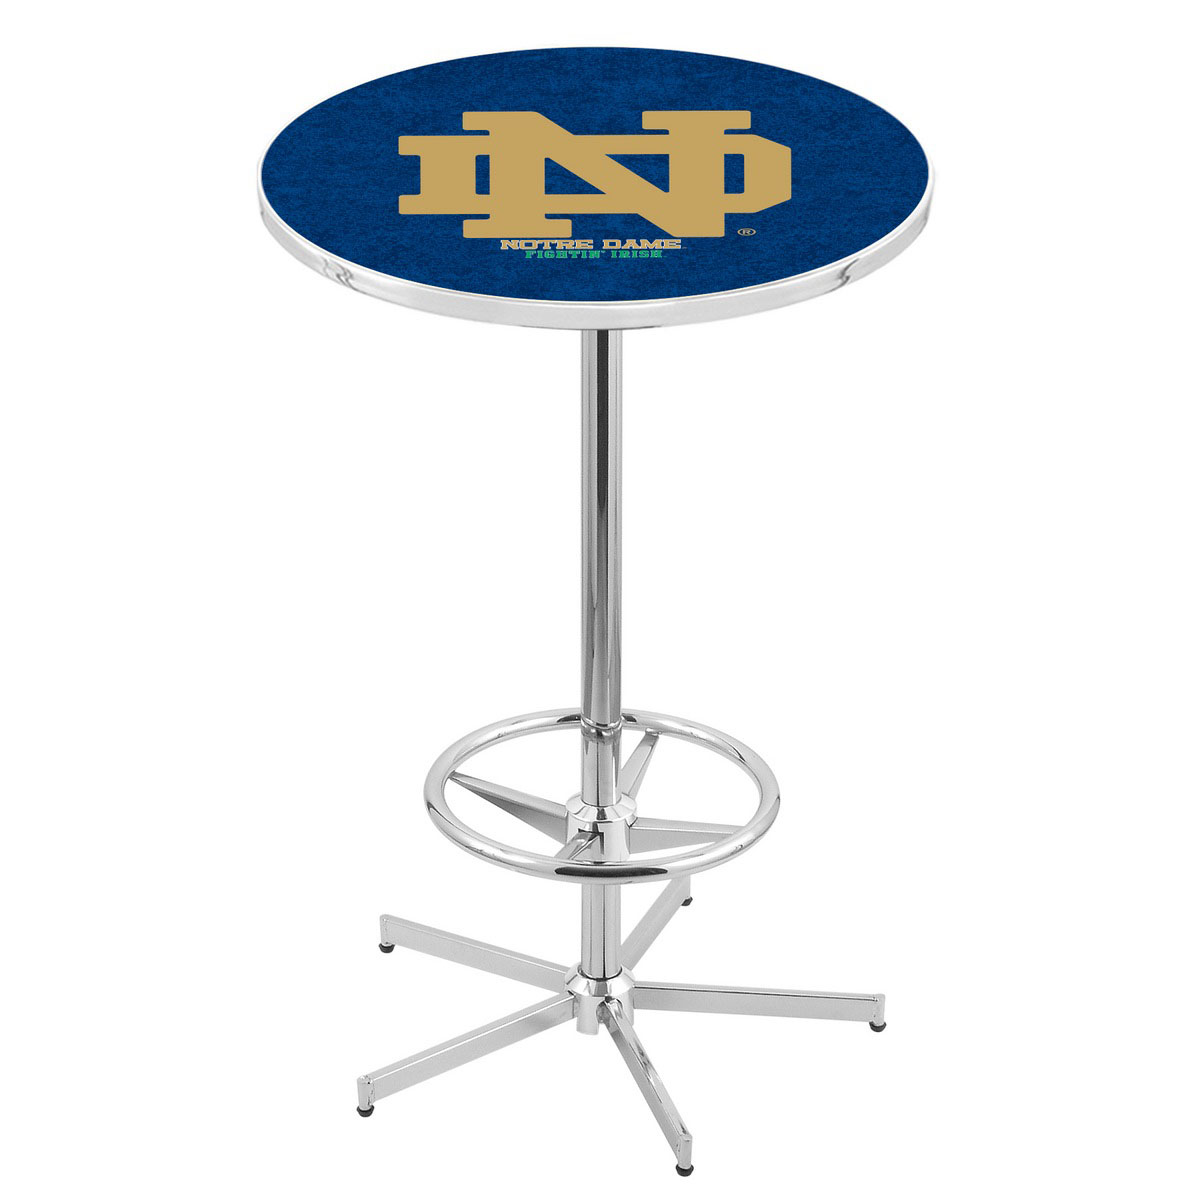 Lovable Chrome Notre Dame Pub Table Product Photo